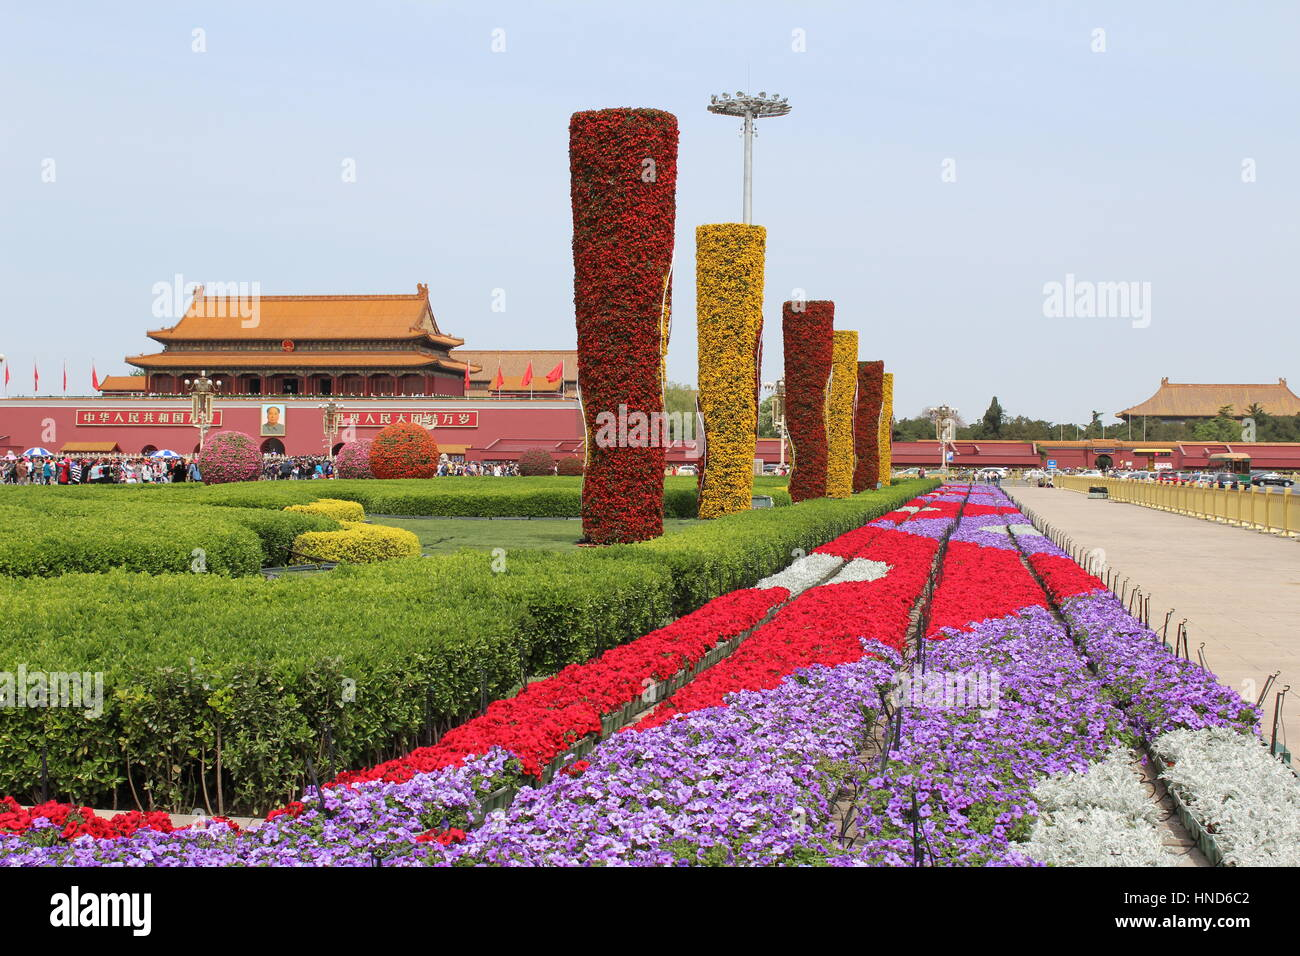 Flowers and patterns at Tiananmen square in front of The Forbidden City with picture og Chairman Mao - Stock Image